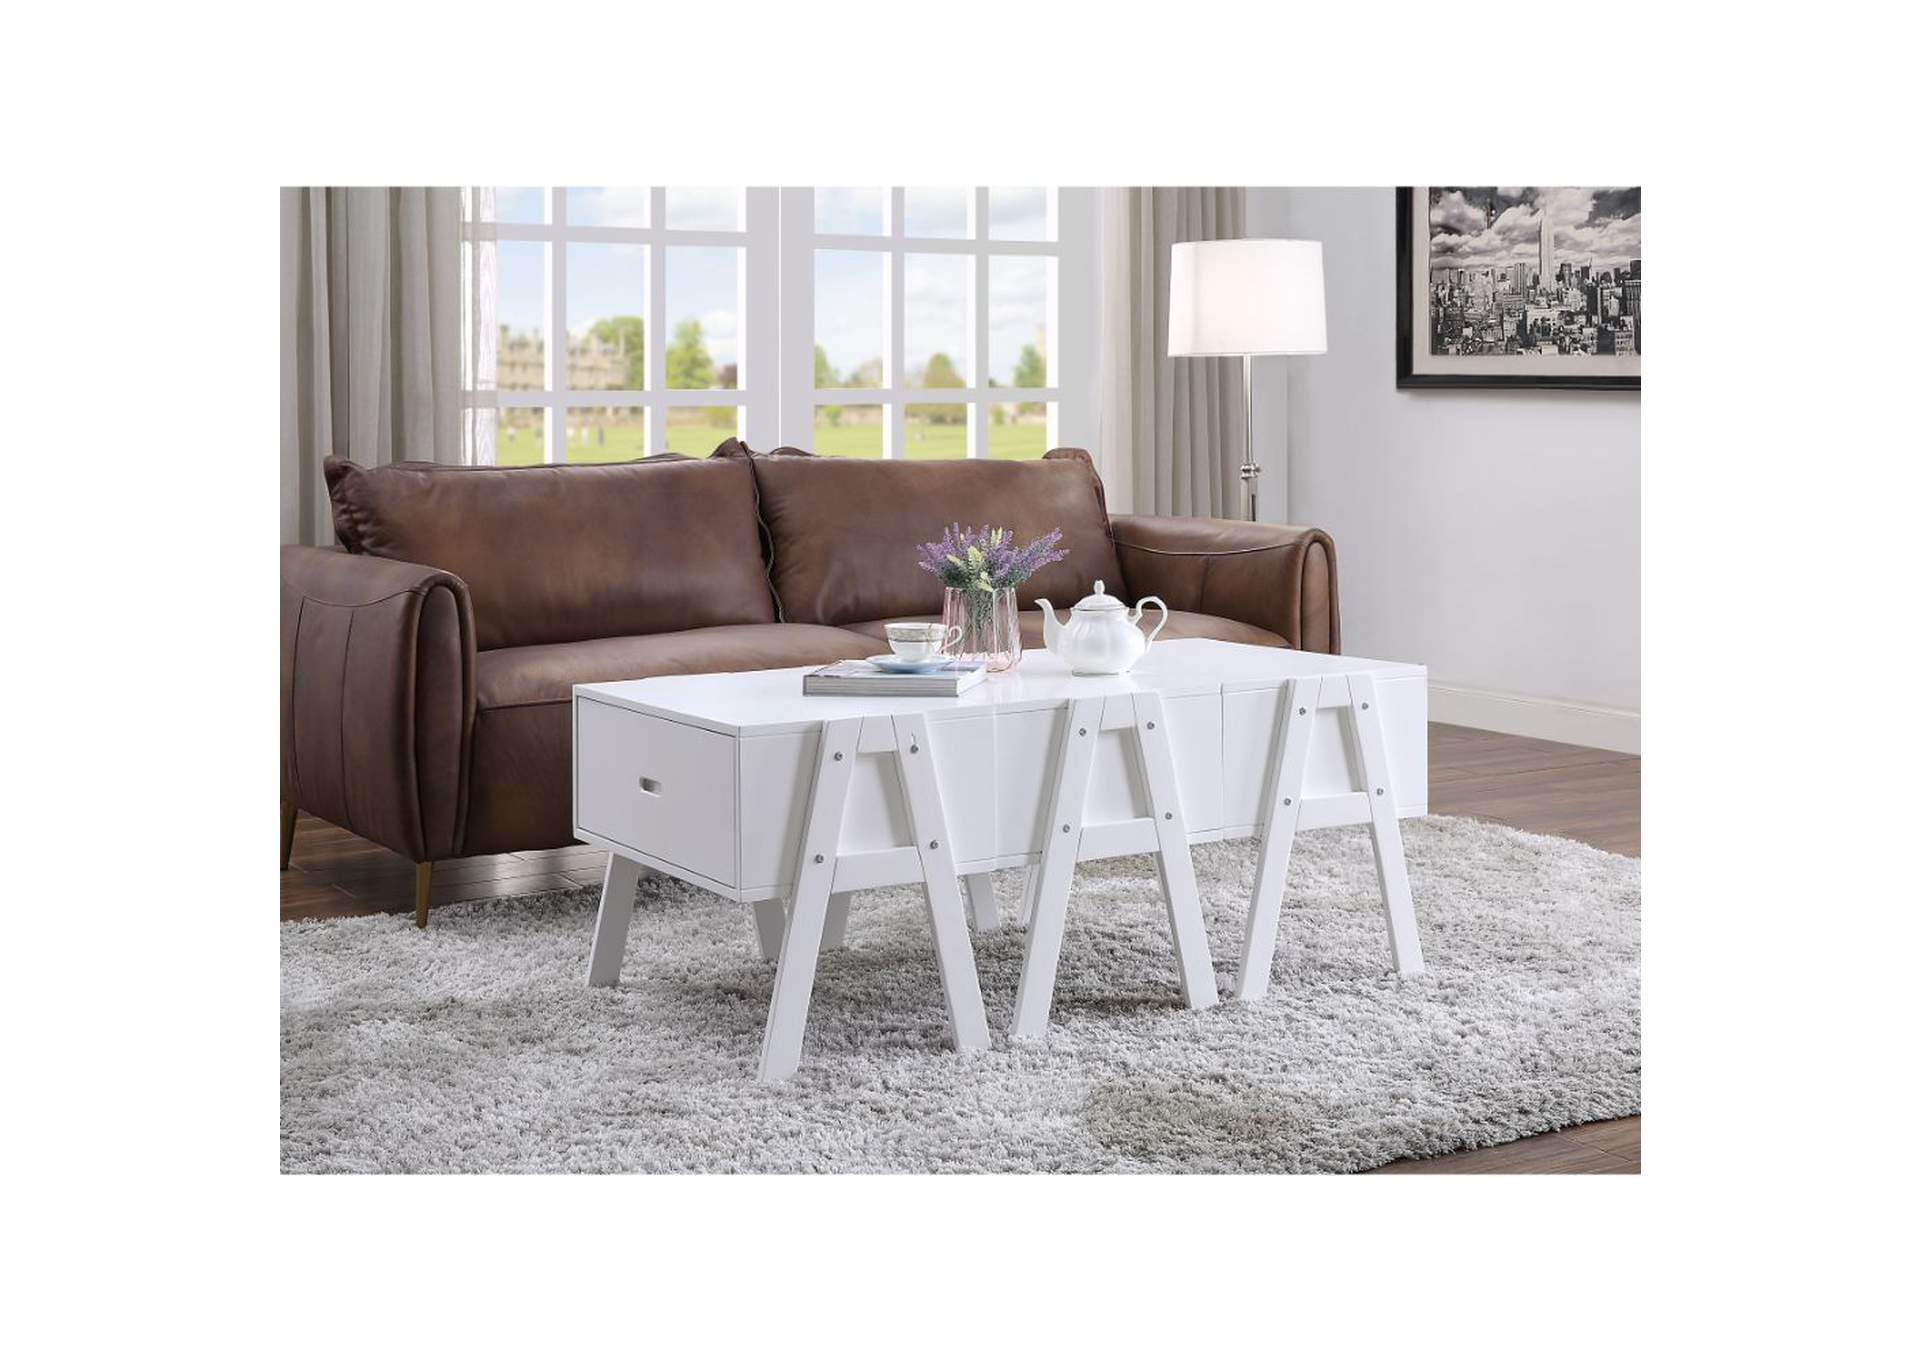 Lonny White Coffee Table,Acme